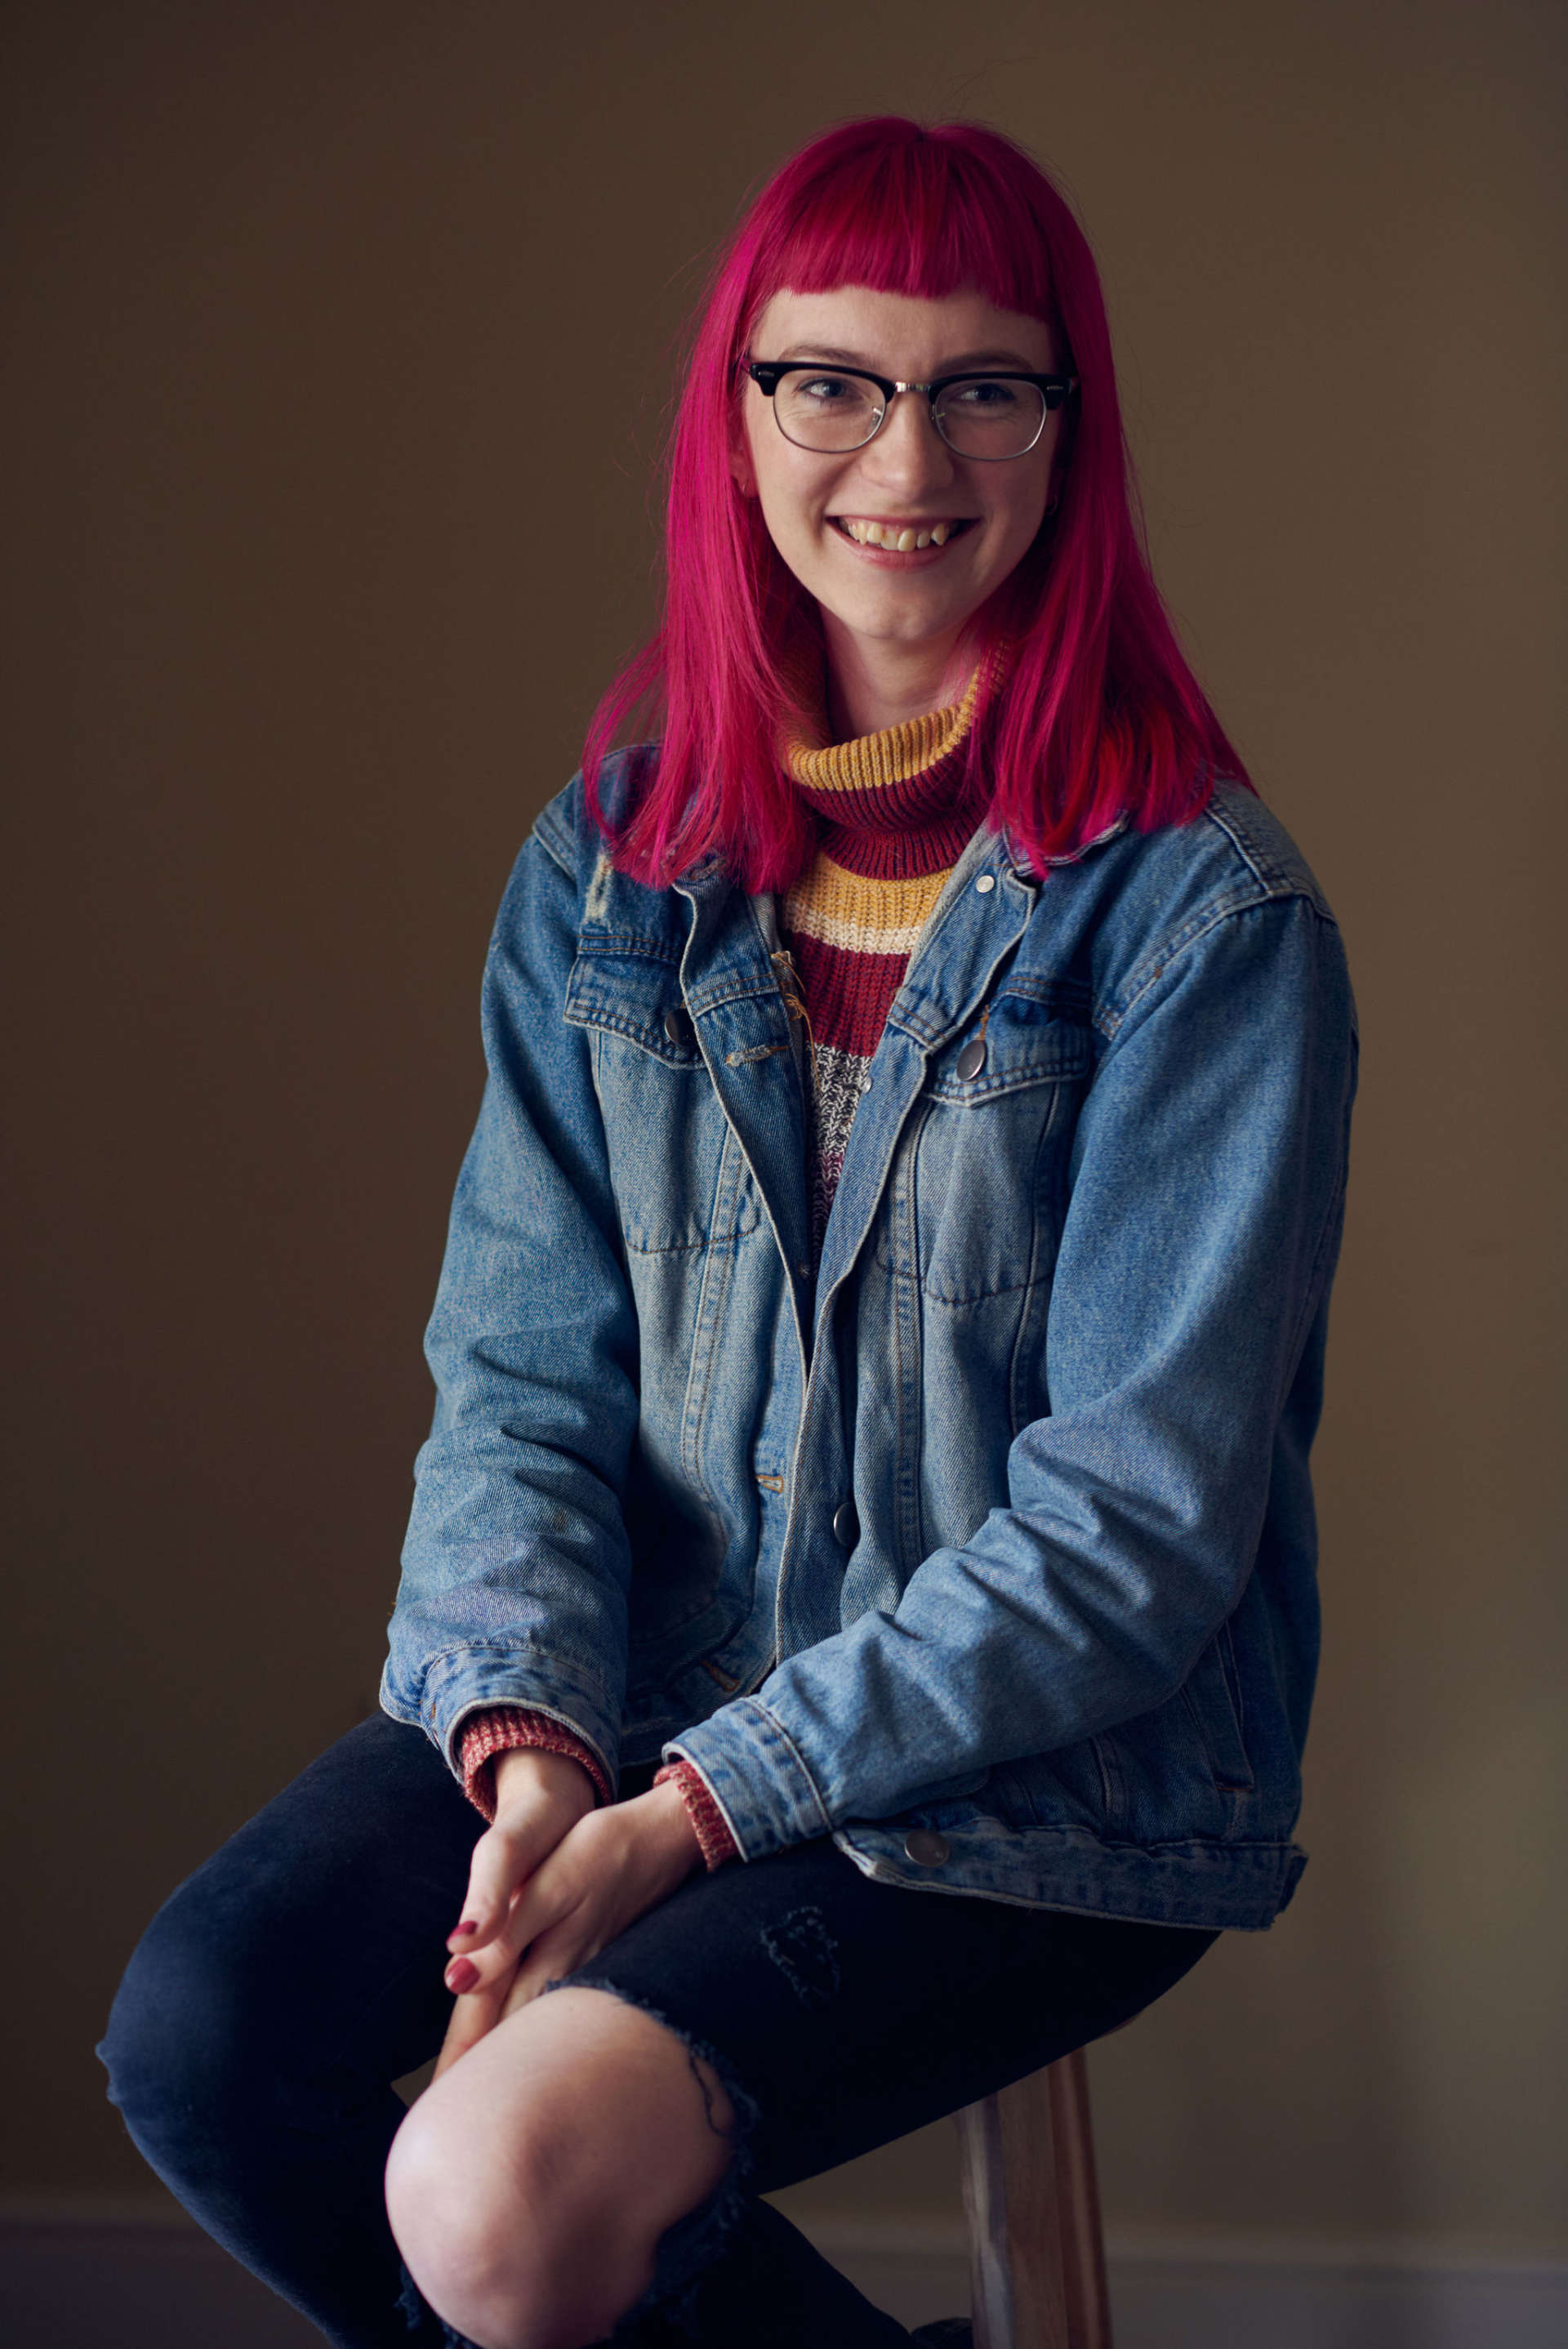 A headshot of the writer Josephine Newman. Jospehine has long dark pink hair and is wearing glasses. She is smiling at the camera.